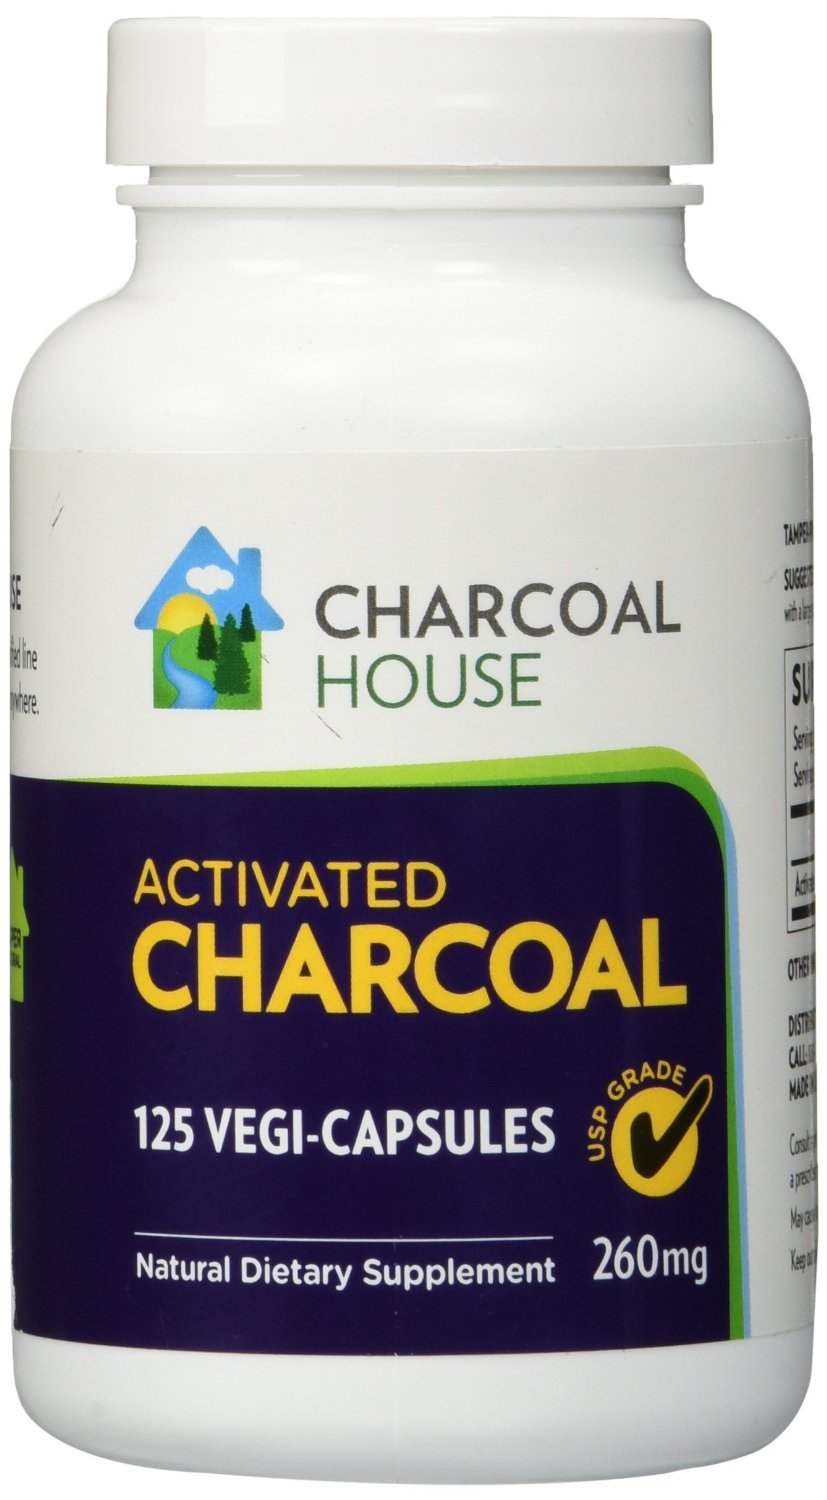 4 bottles 125each Activated Charcoal Capsules USP - Vegetarian Caps, Natural, easy carry, acid reflux, teeth whitening (4)